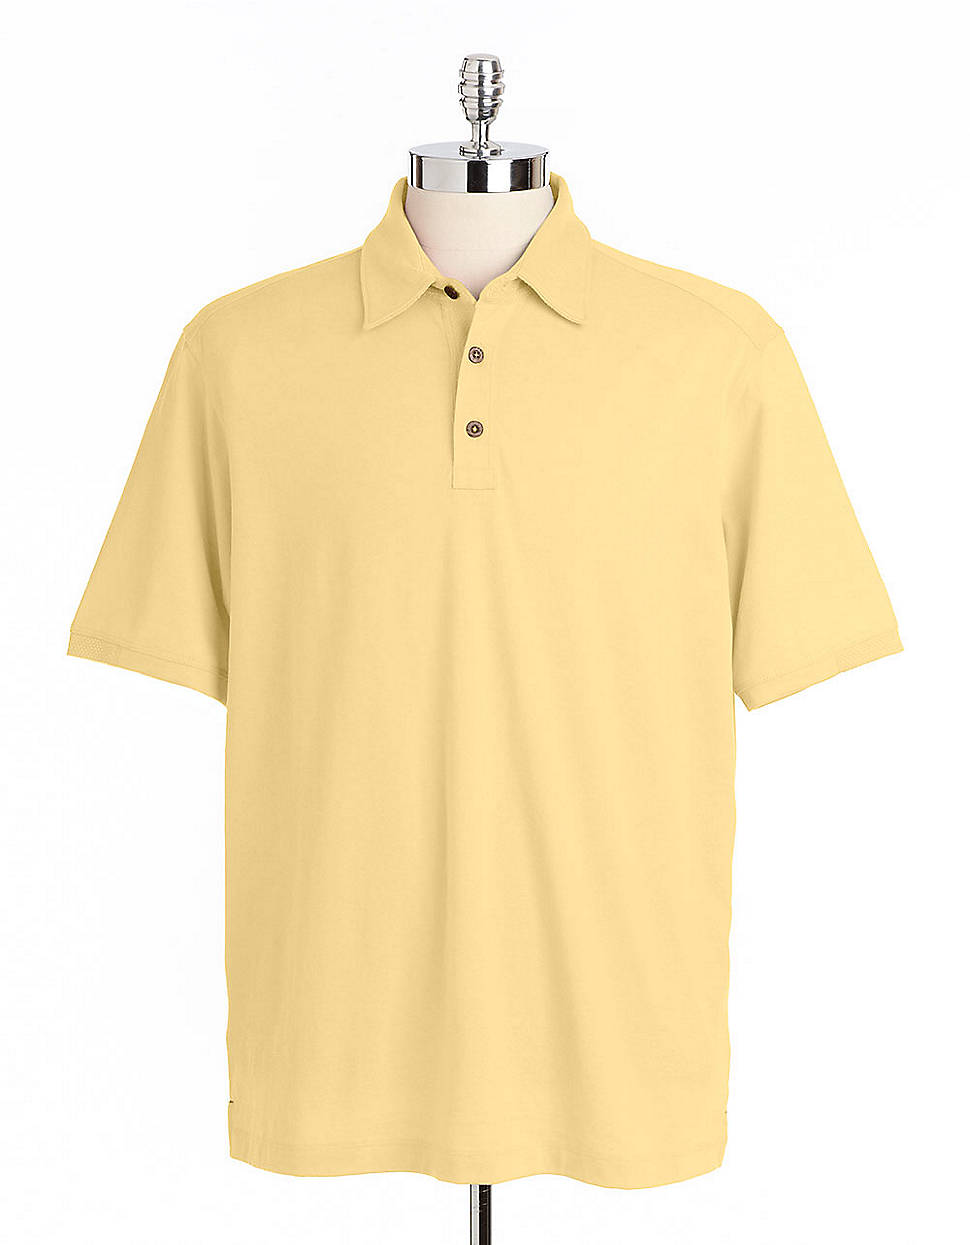 tommy bahama palm cove spectator polo shirt in yellow for